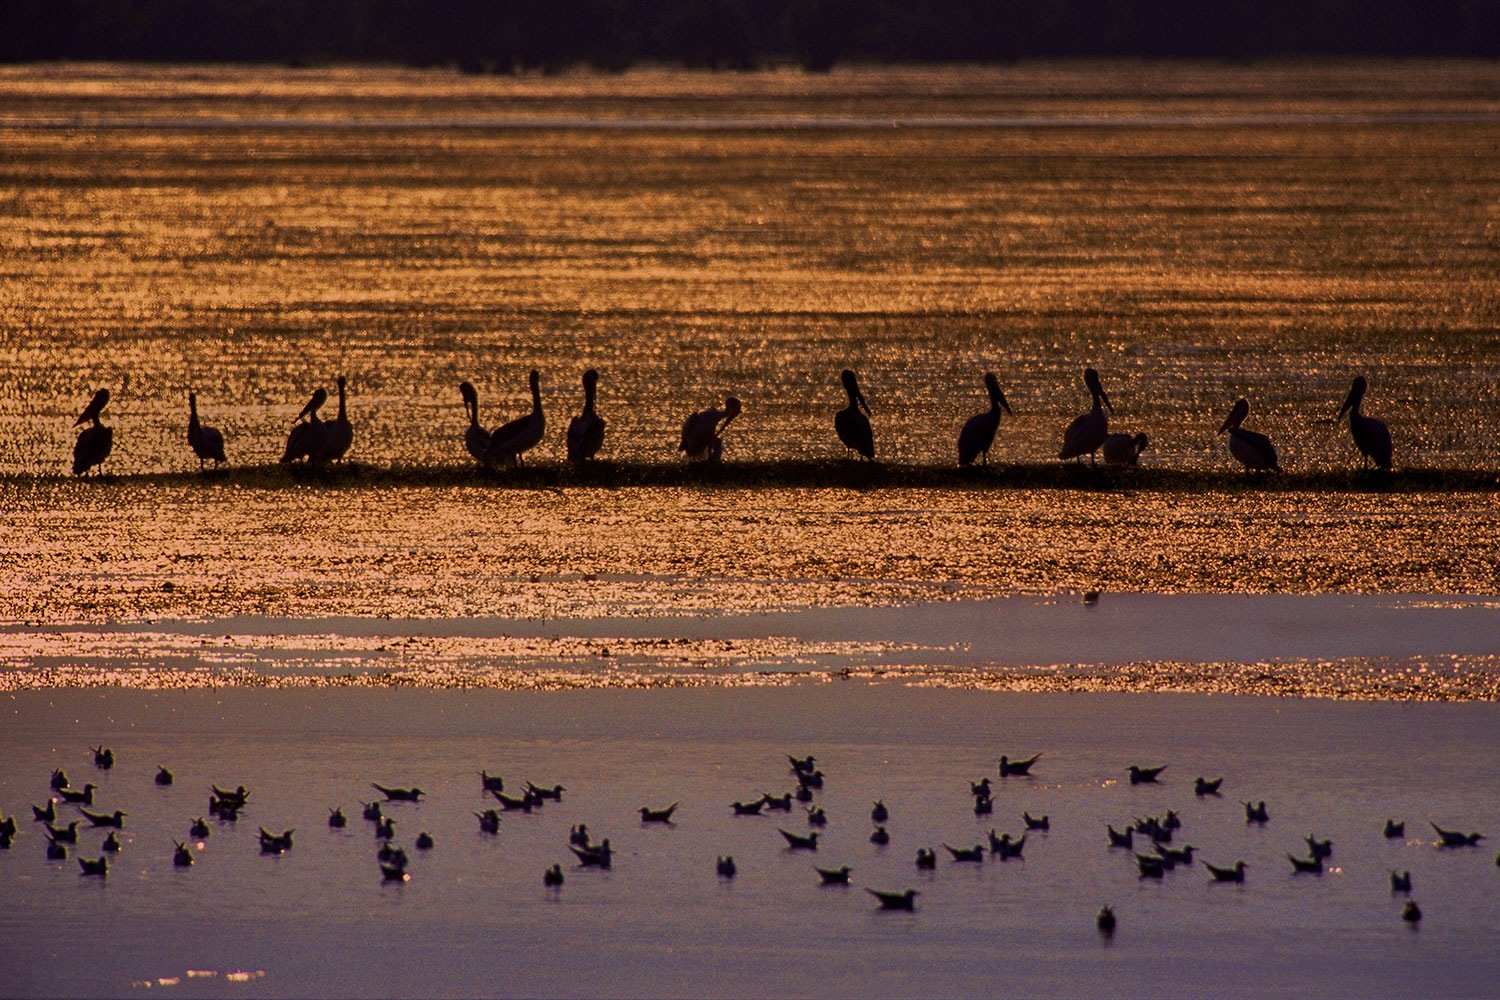 Magical sunset and the pelicans by Sotiris Siomis